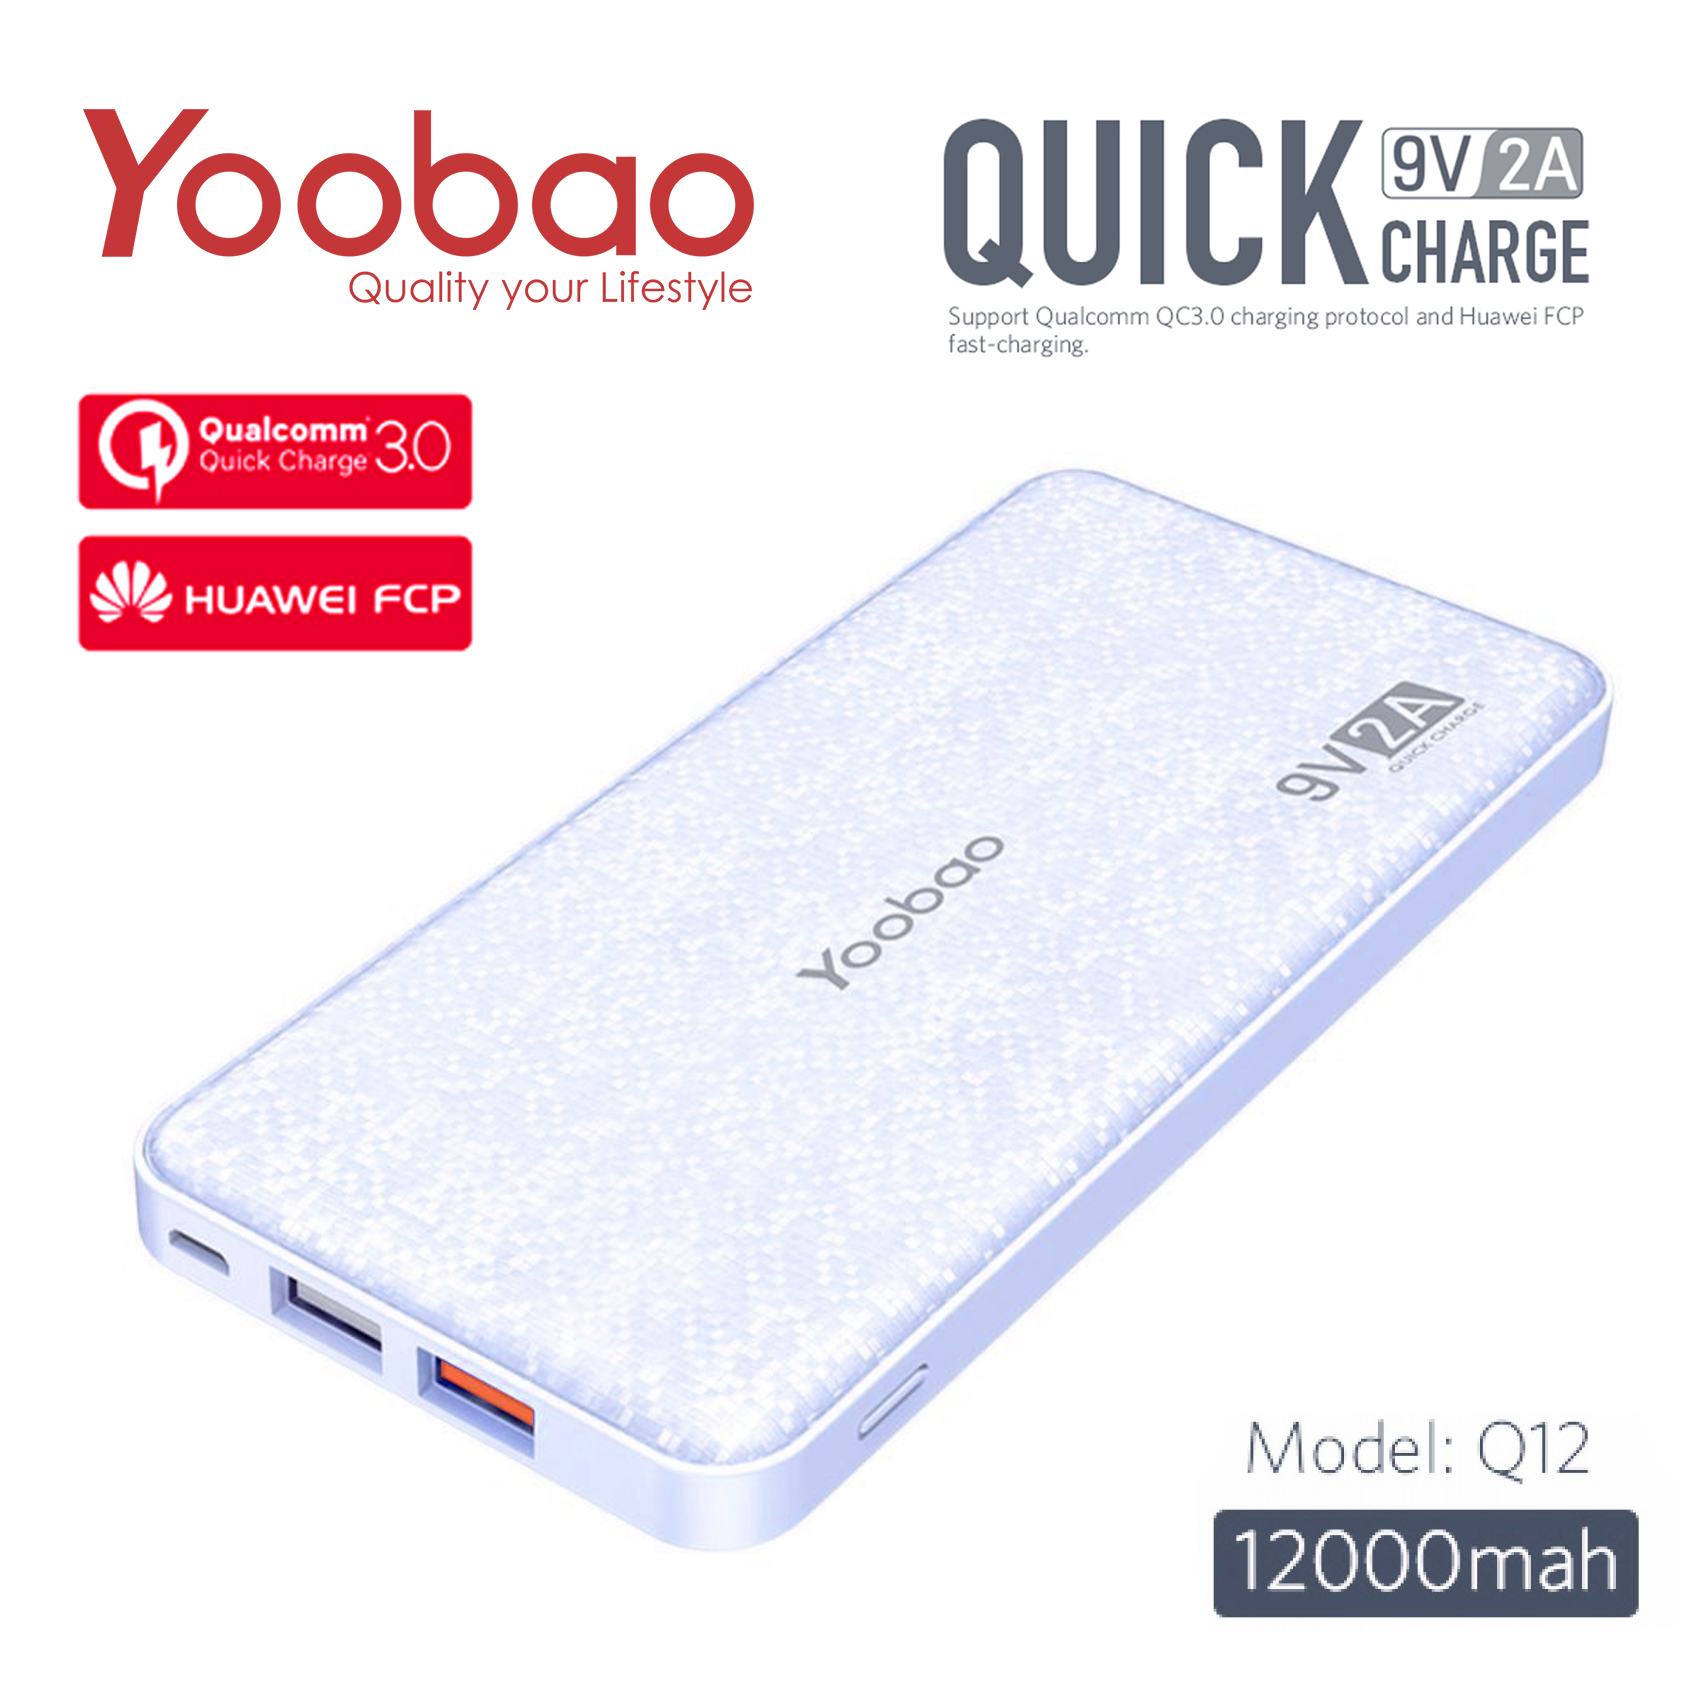 Yoobao Q12 12000 mAh Qualcomm 3.0 Portable Quick Charge Power Bank - Blue